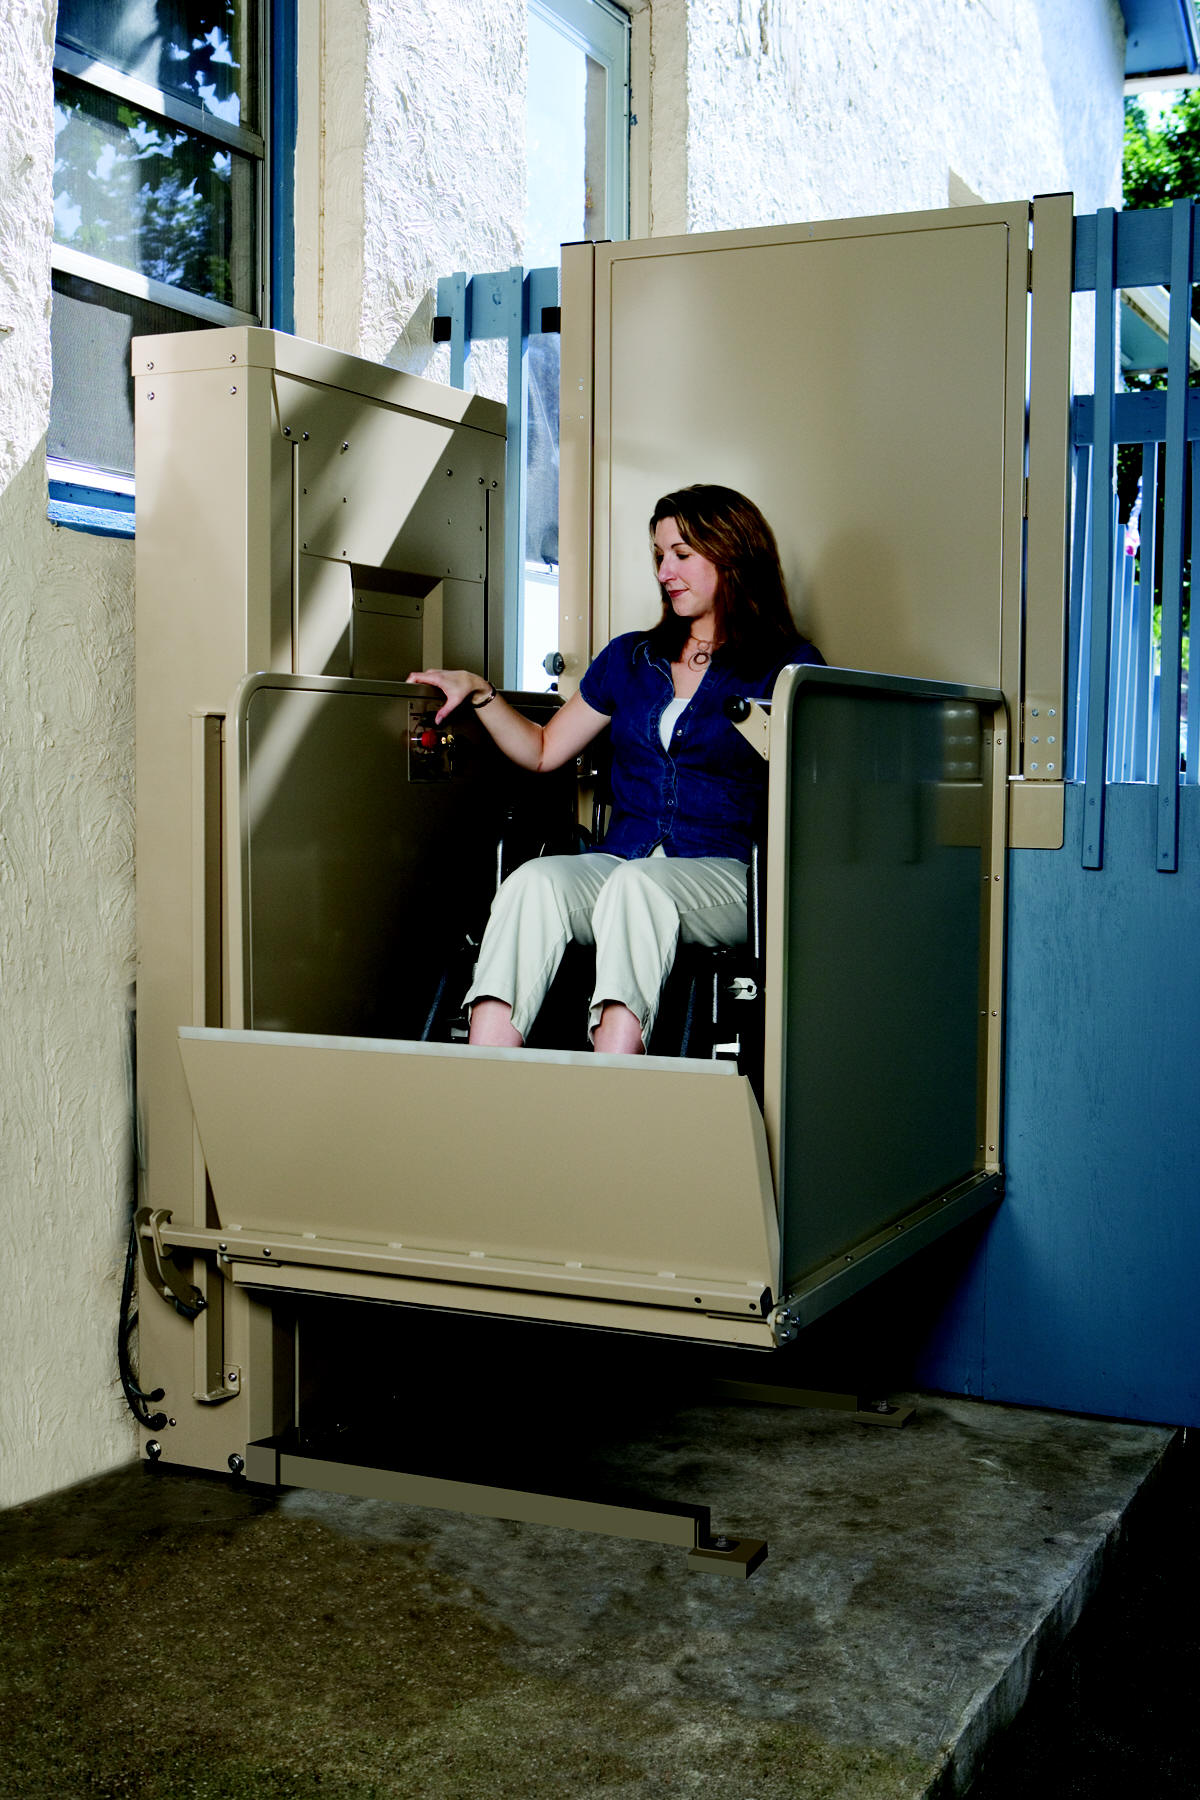 bruno stair lifts price used chairlifts cost sale stairlifts